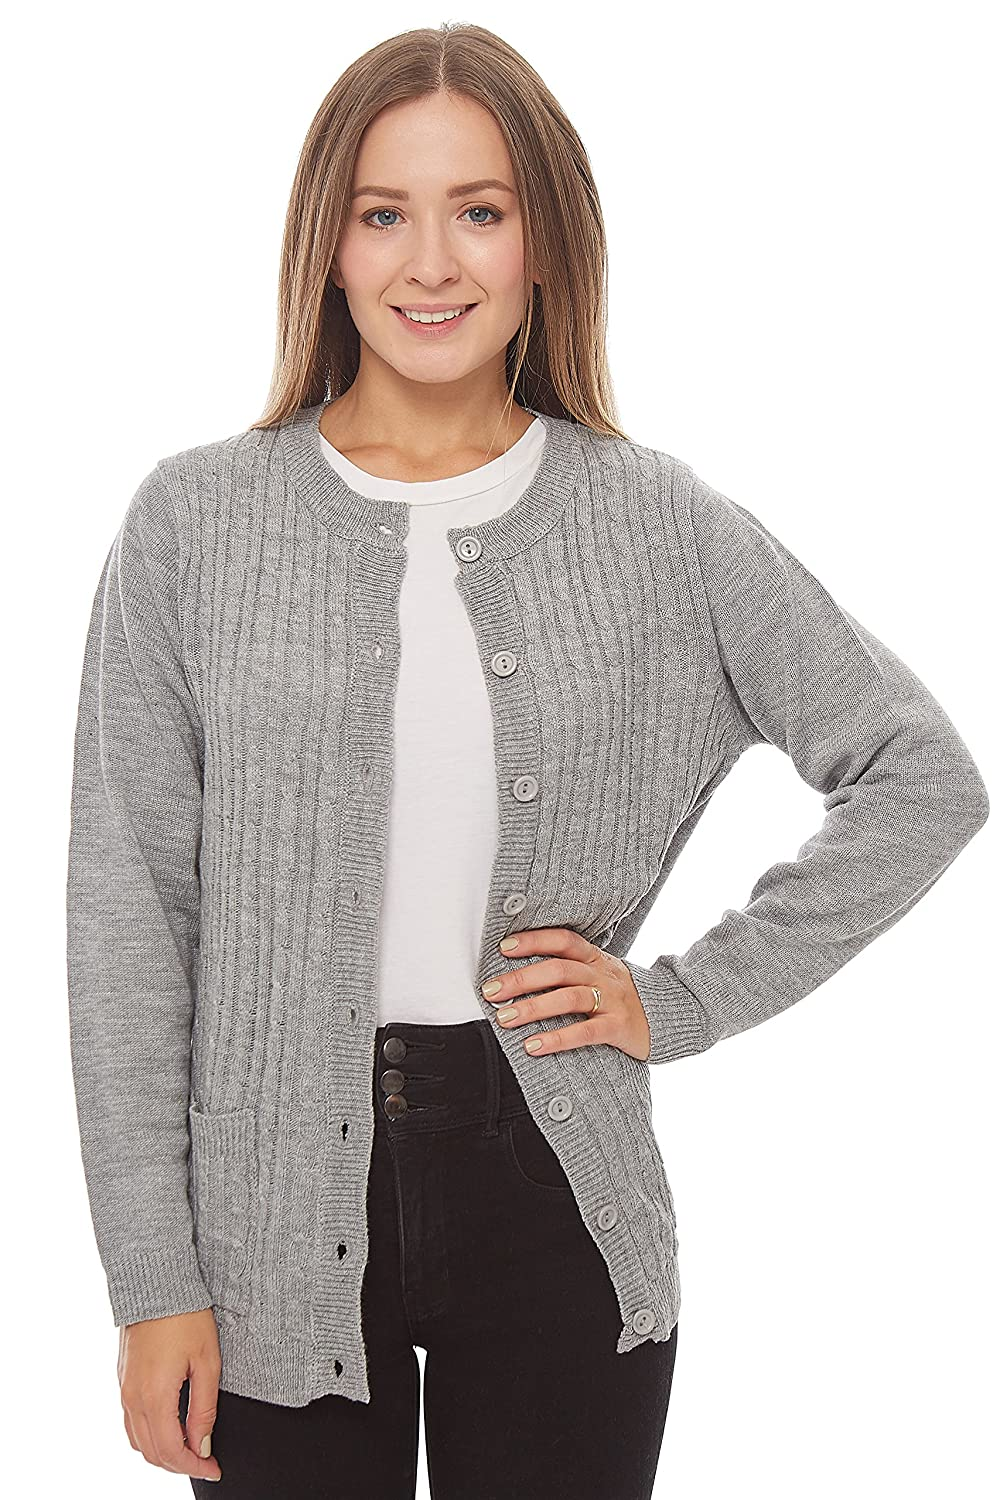 National Classic Cardigan Sweater at Amazon Women's Clothing store ...